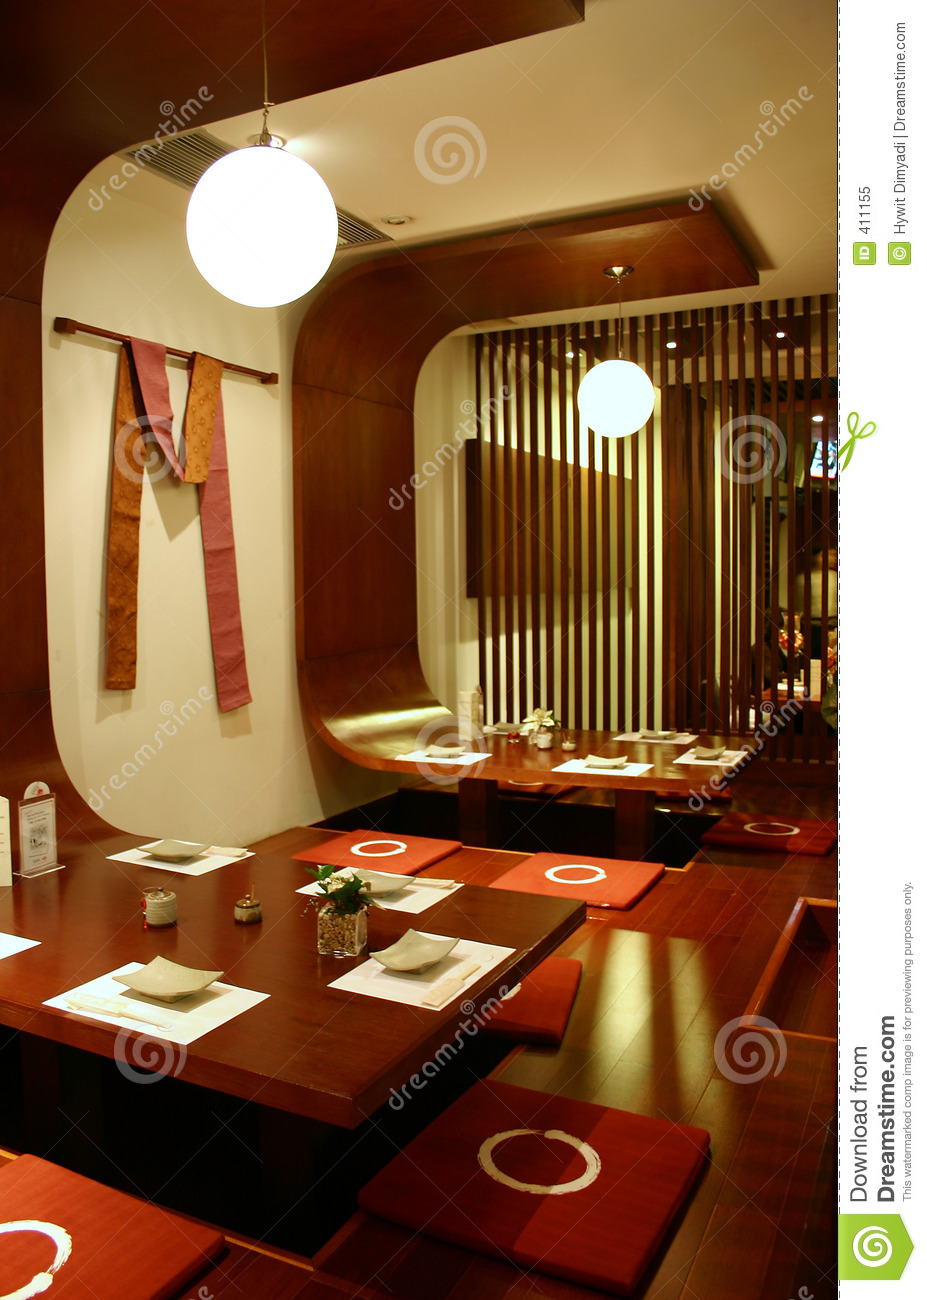 Restaurant interior stock image of calm